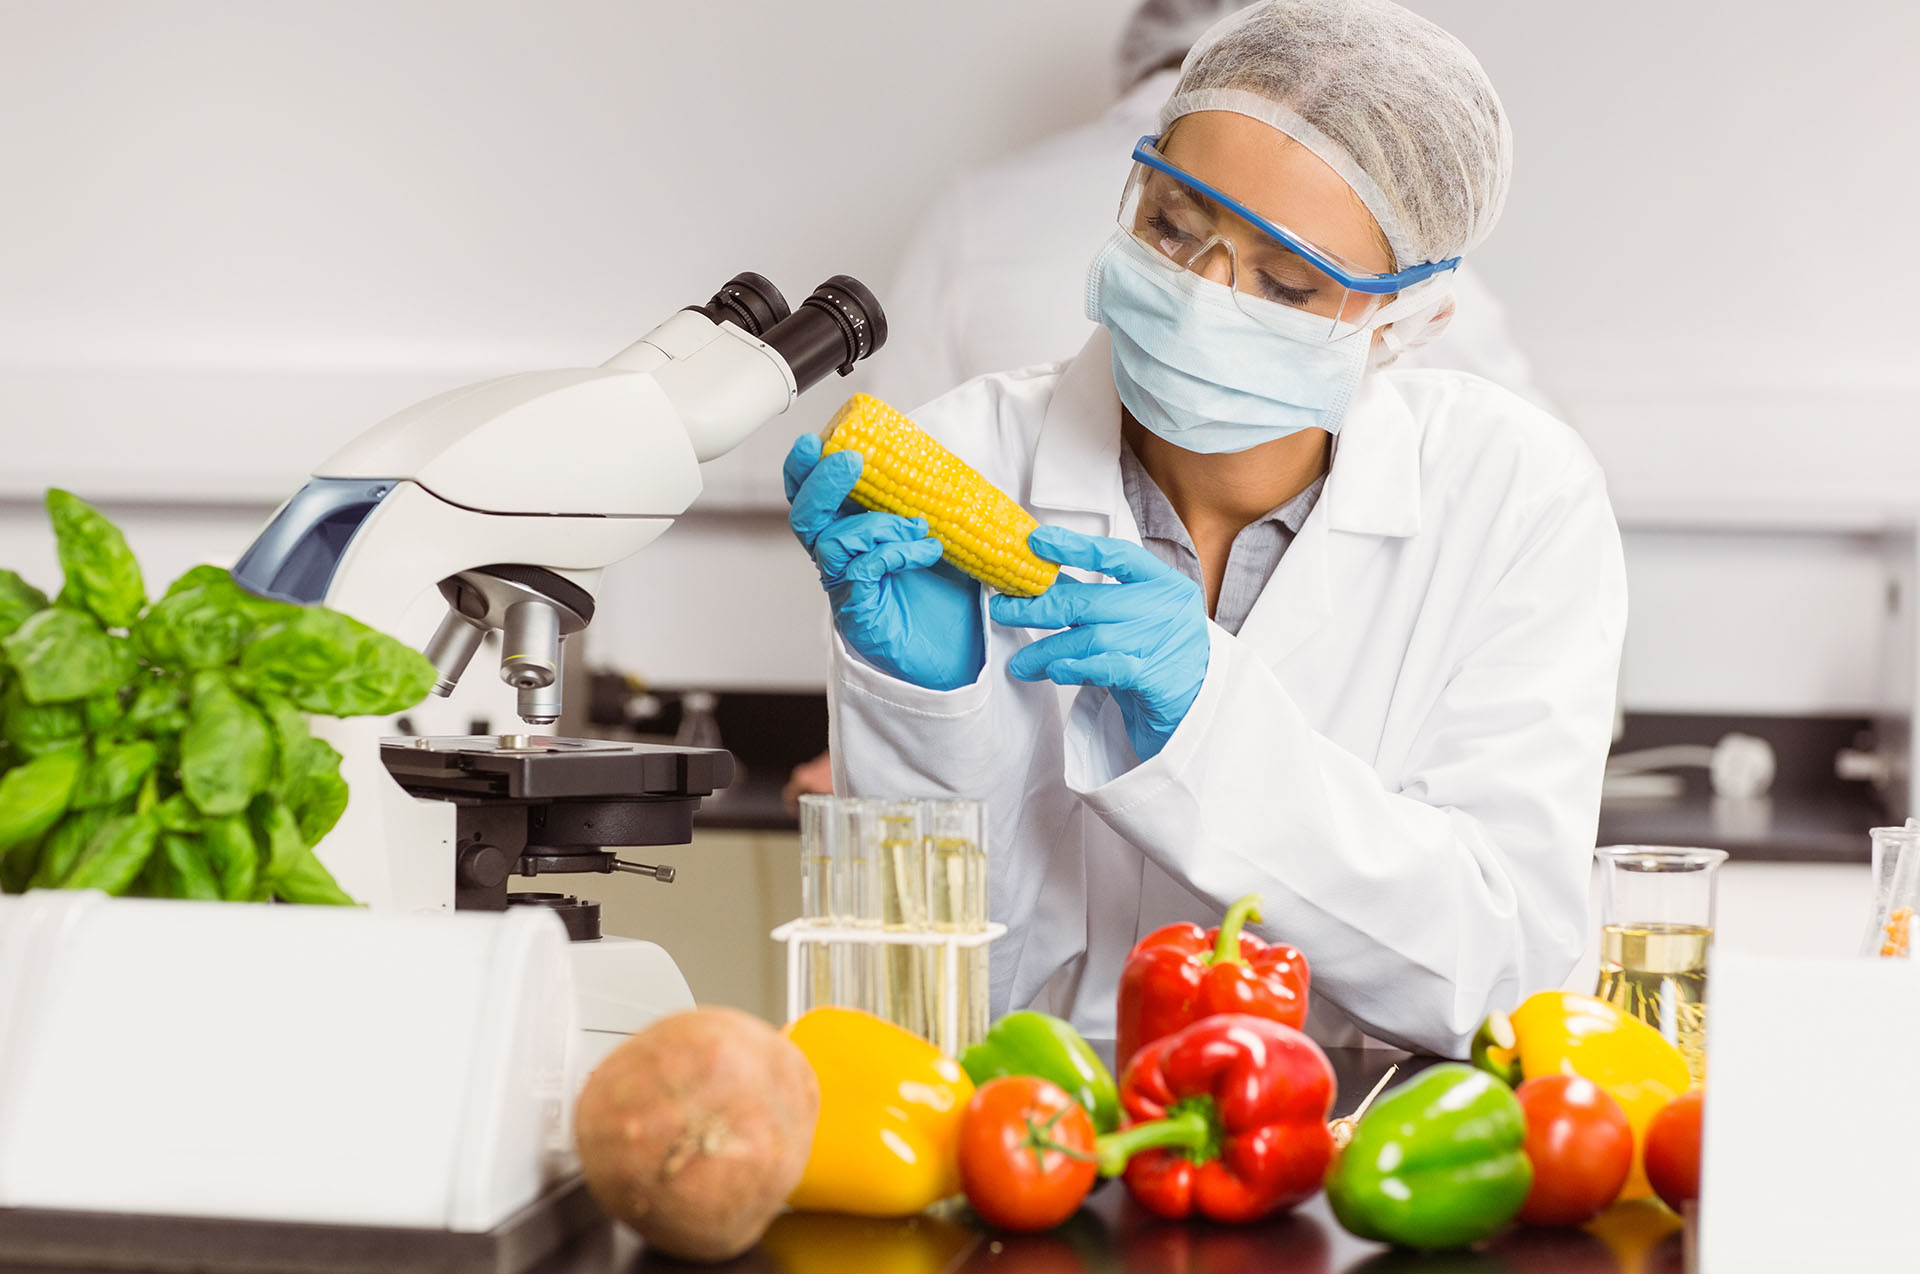 Food Safety Testing Market To Witness A Substantial Growth Owing To Rising Adoption Of Food Safety Till 2031